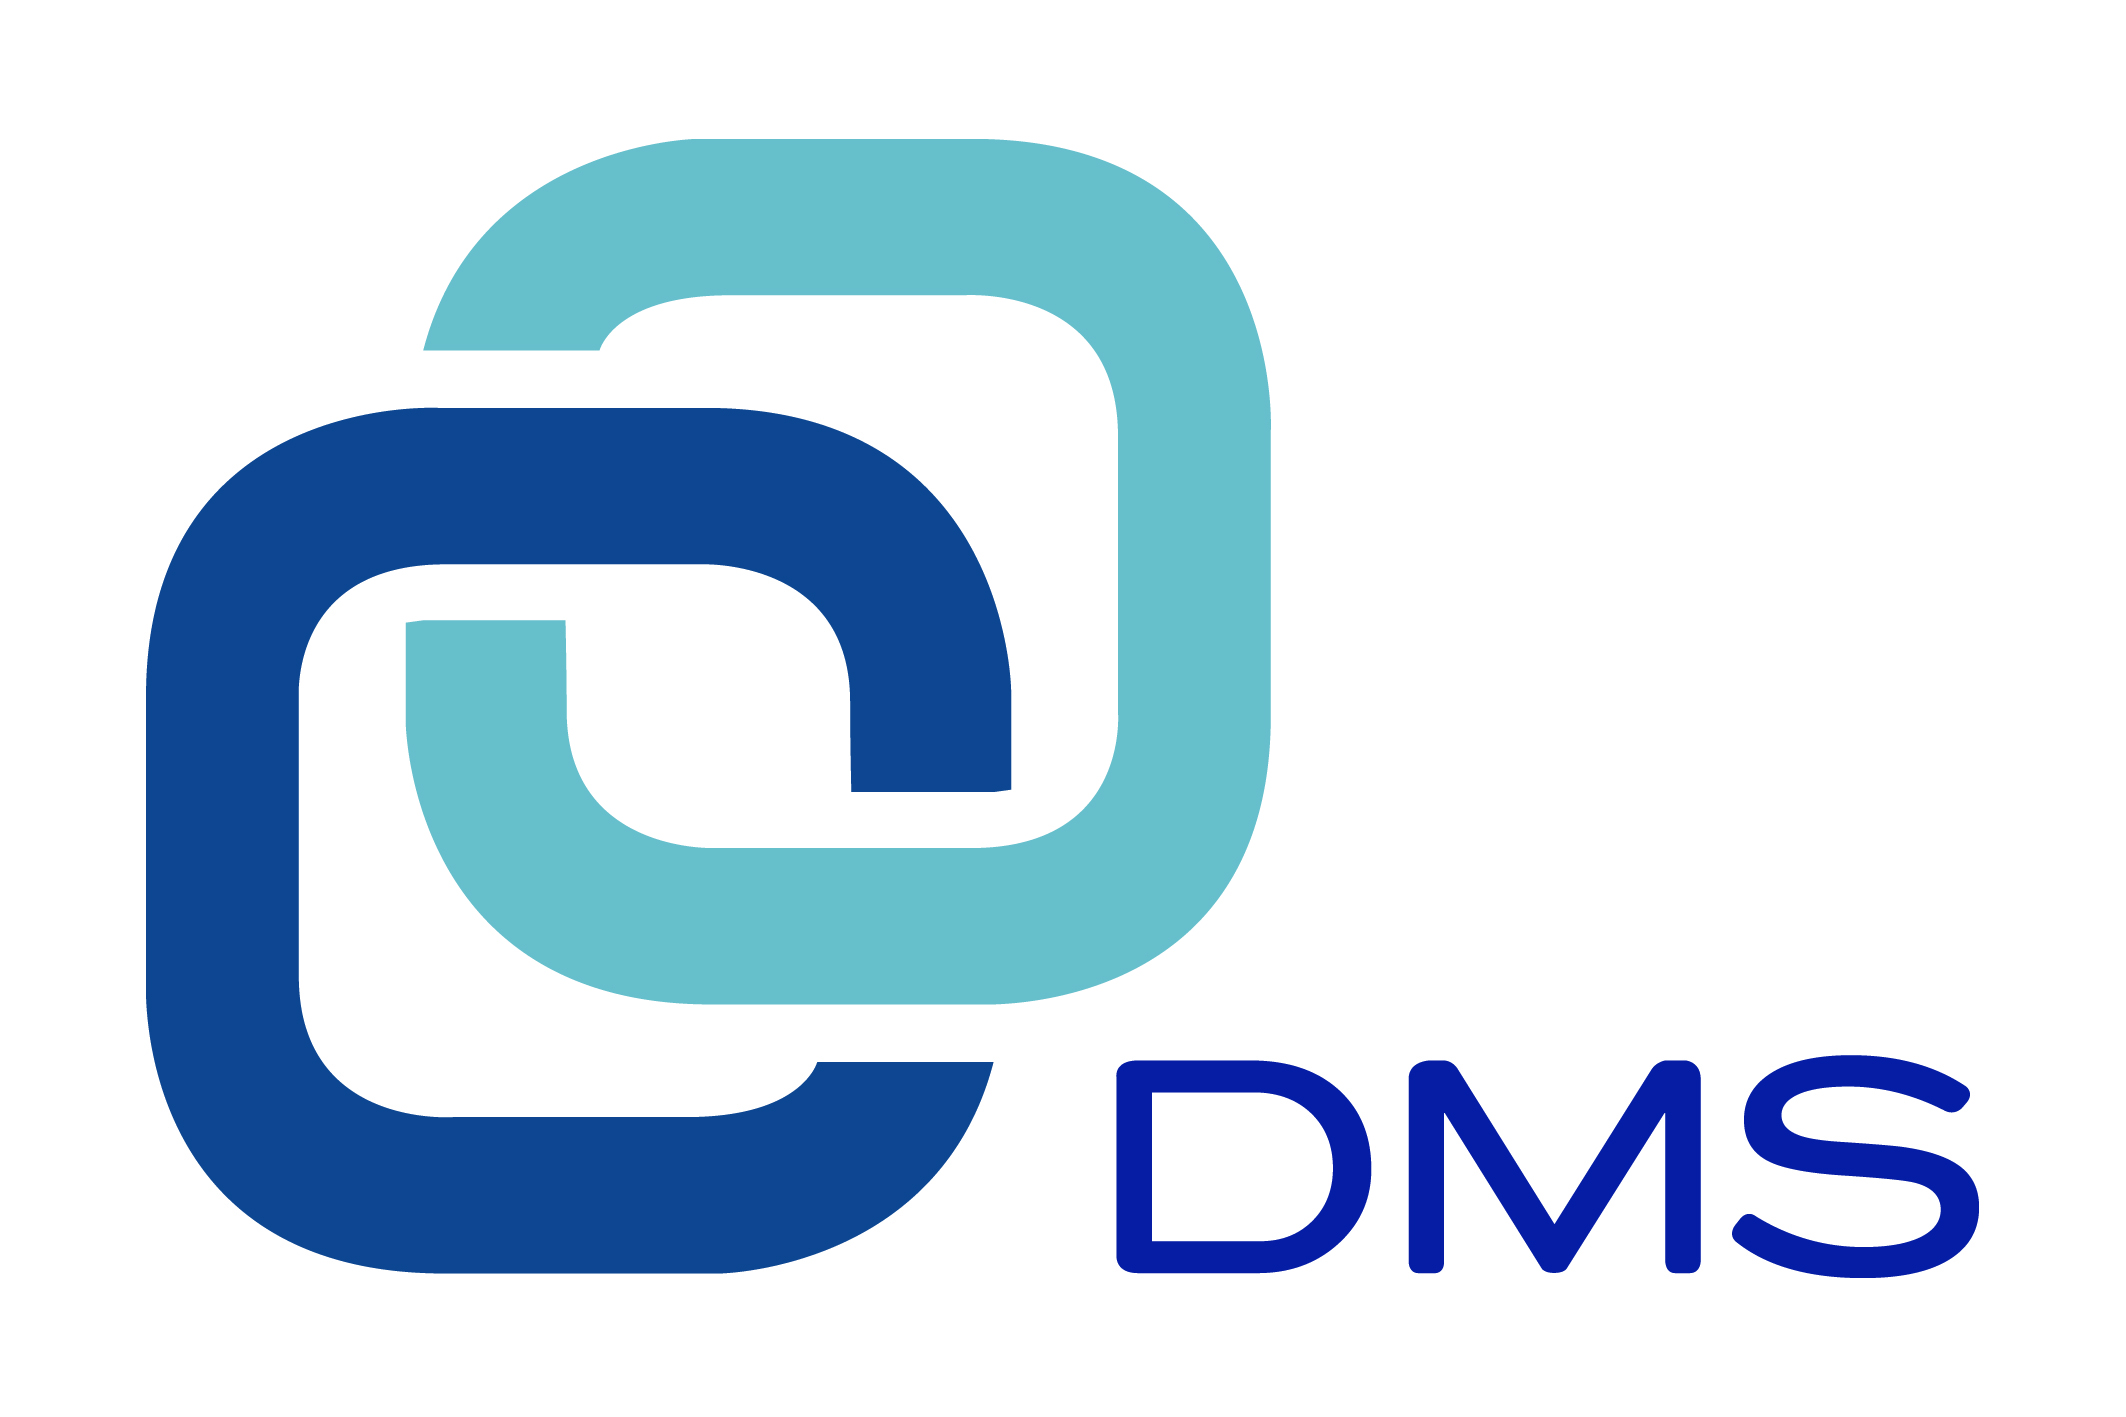 DMS - Solutions focused service consultancy group